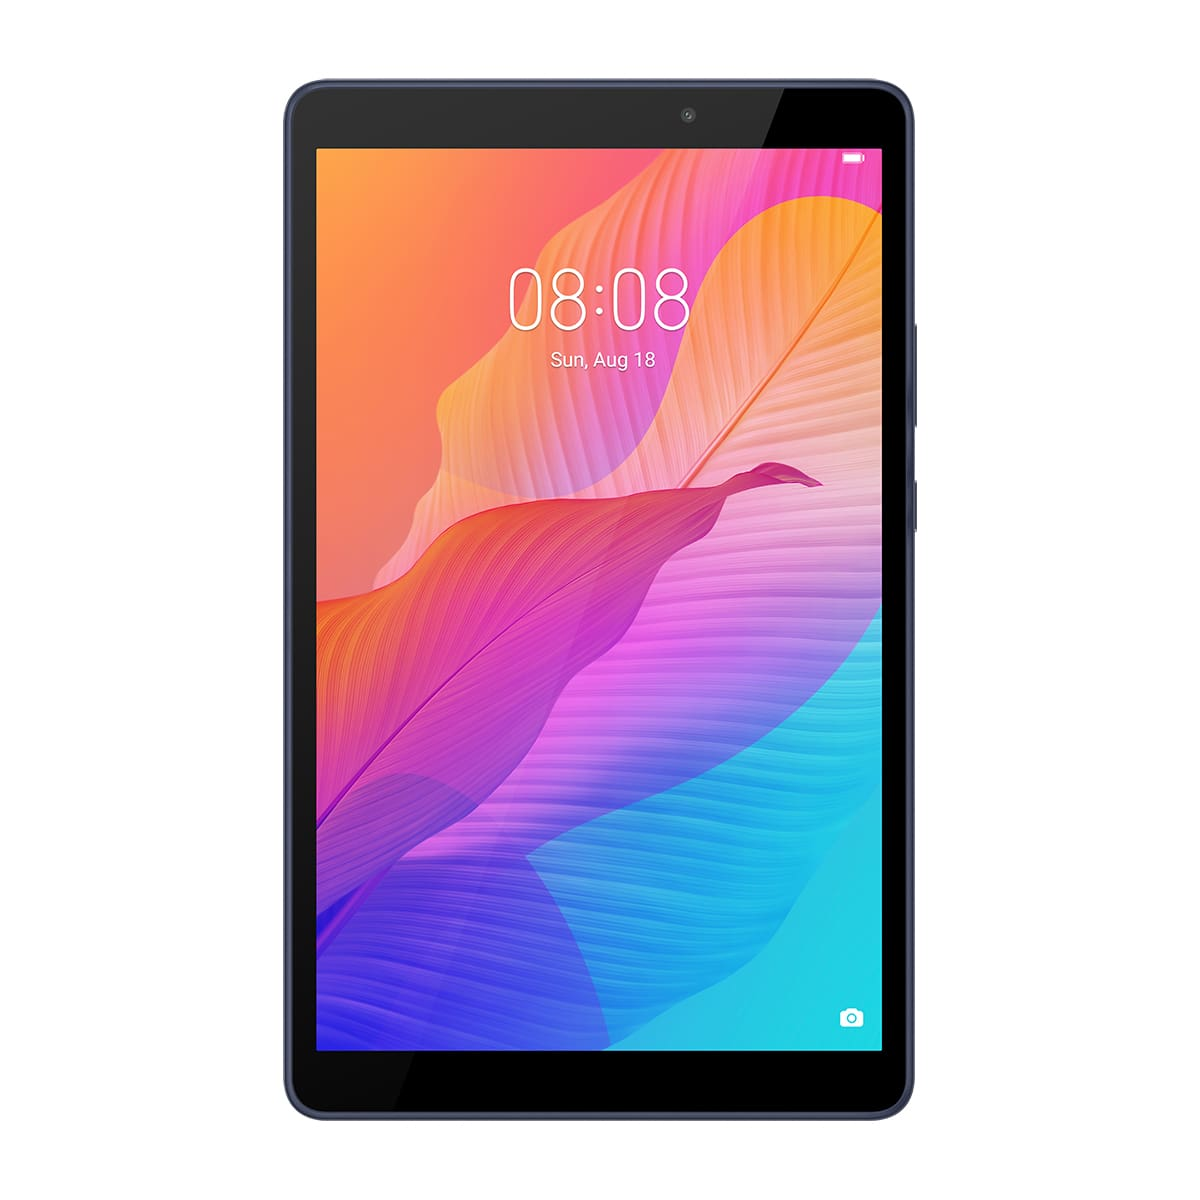 Huawei MatePad T8 Tablet 20,3 cm (8 Zoll) 2 GHz Android 5 MP für 119,00 Euro